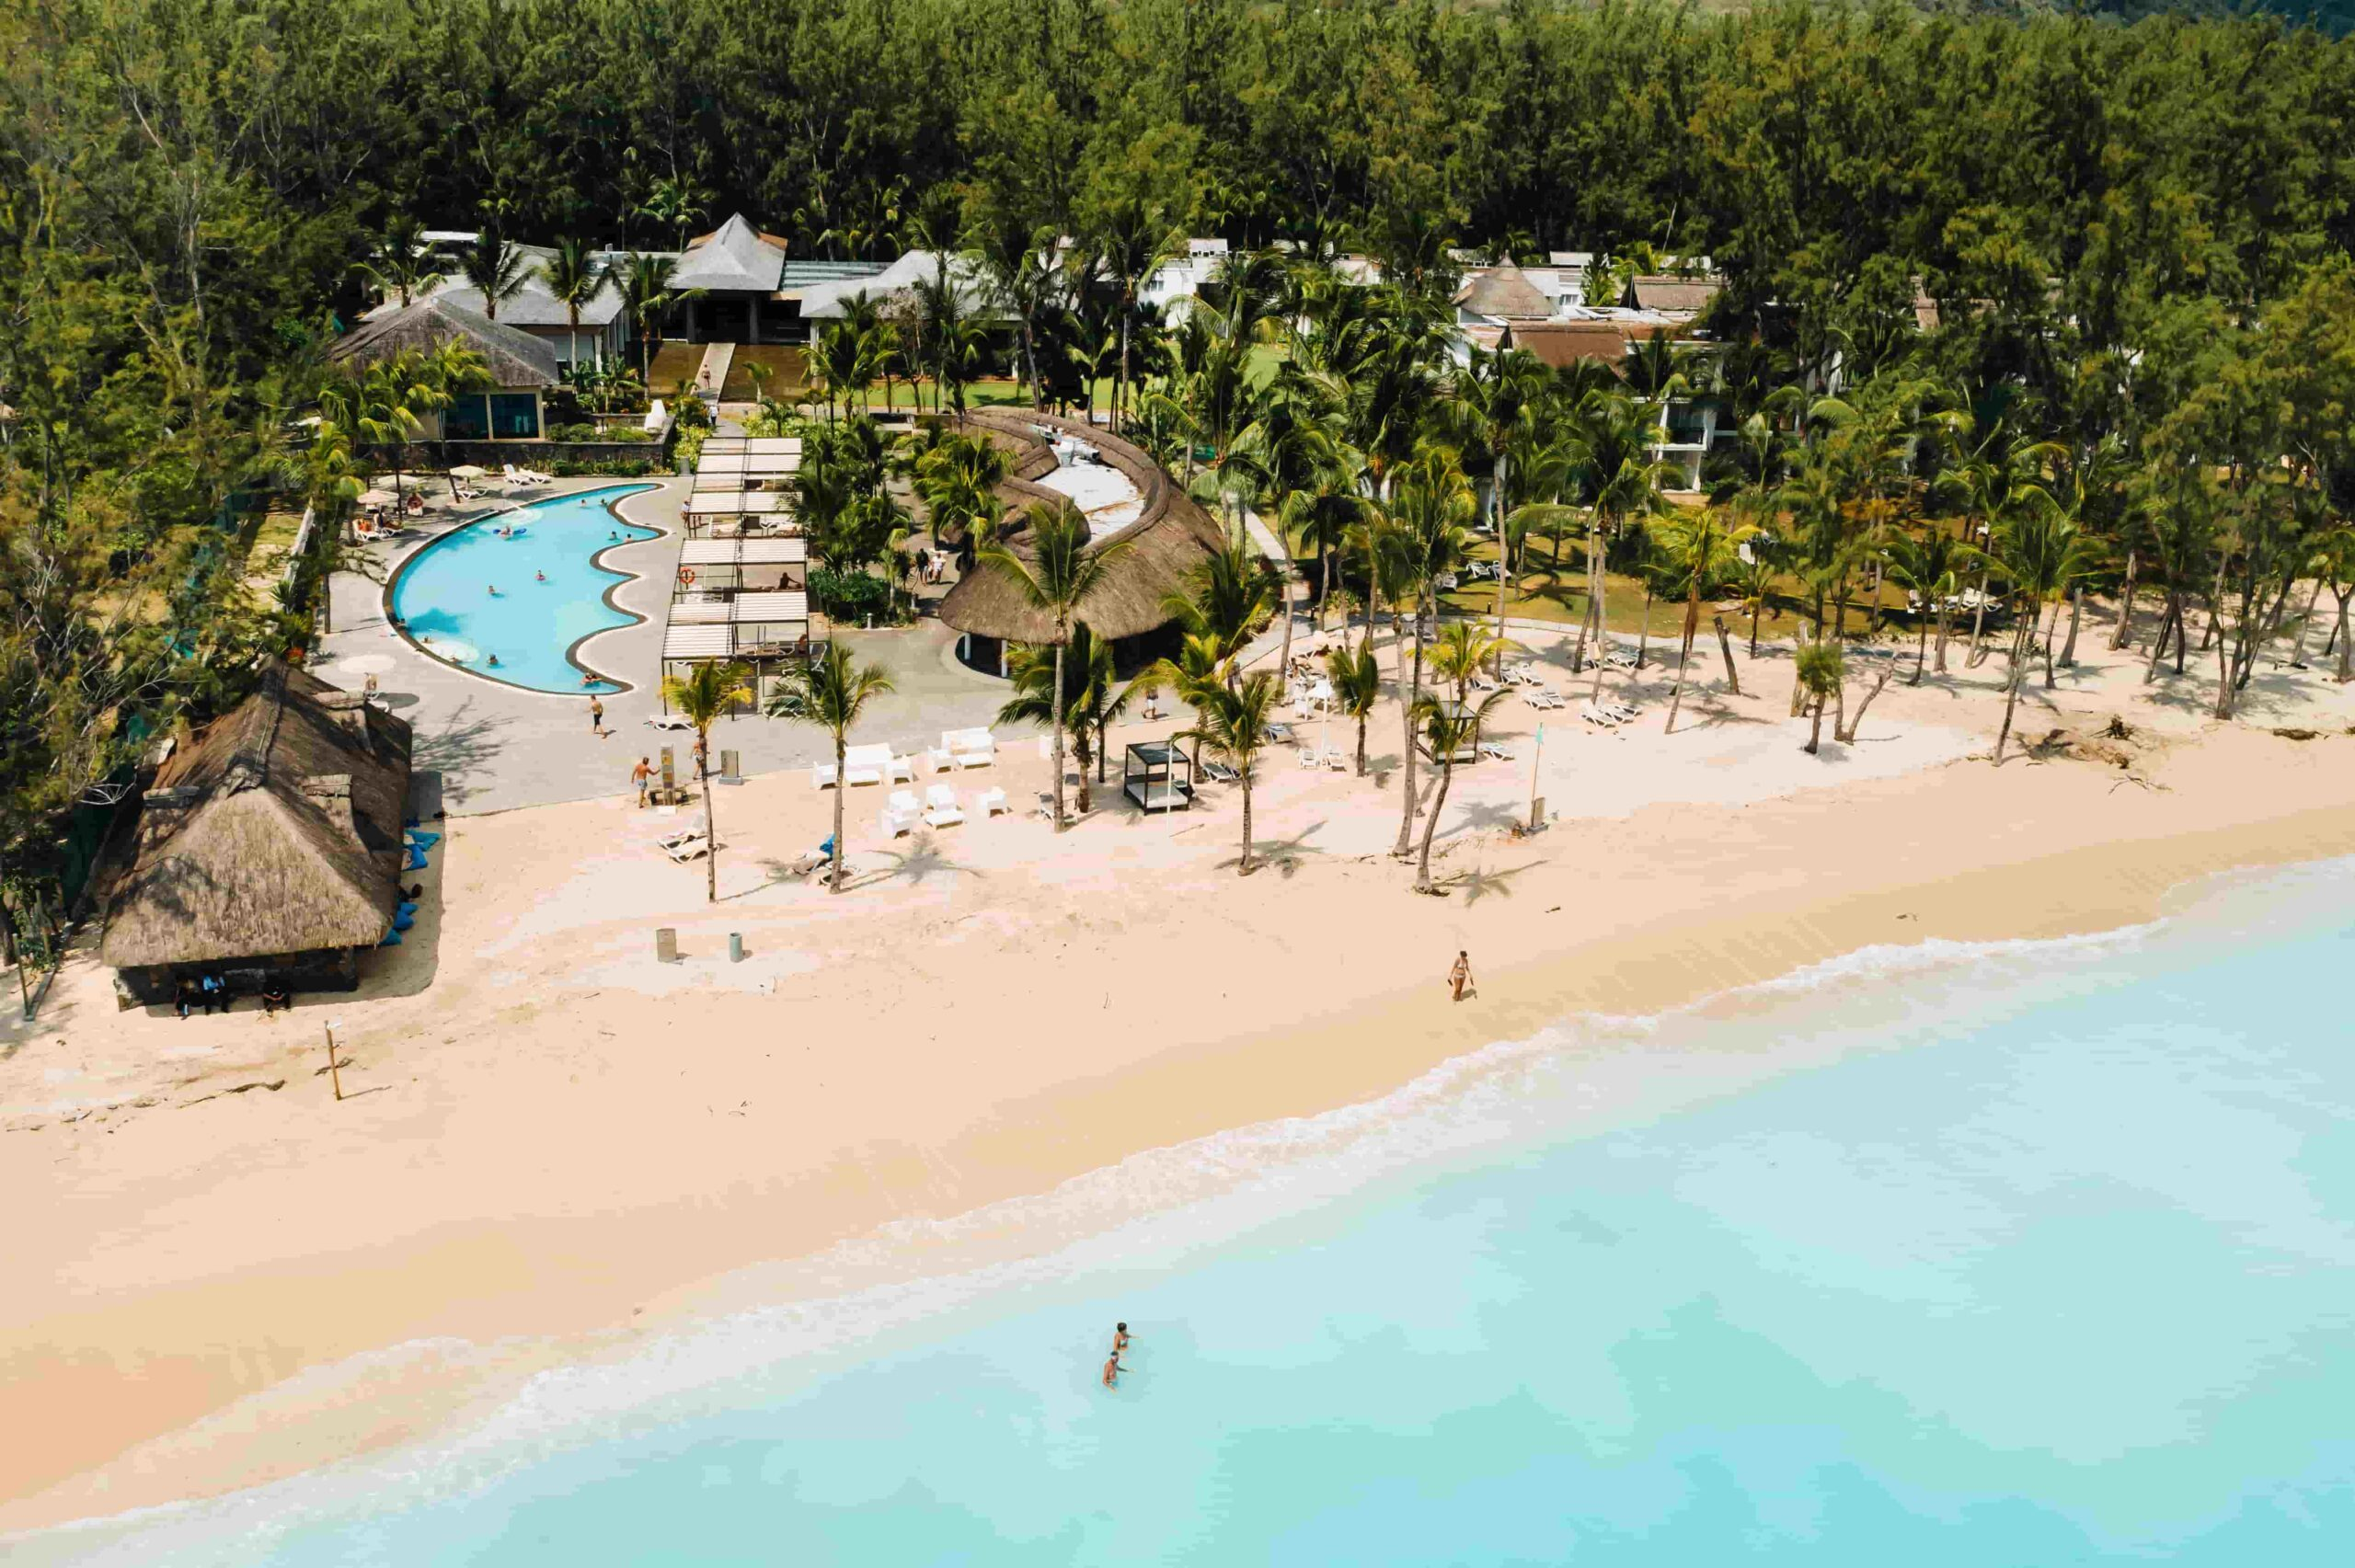 Pool and beach at luxury resort in Mauritius